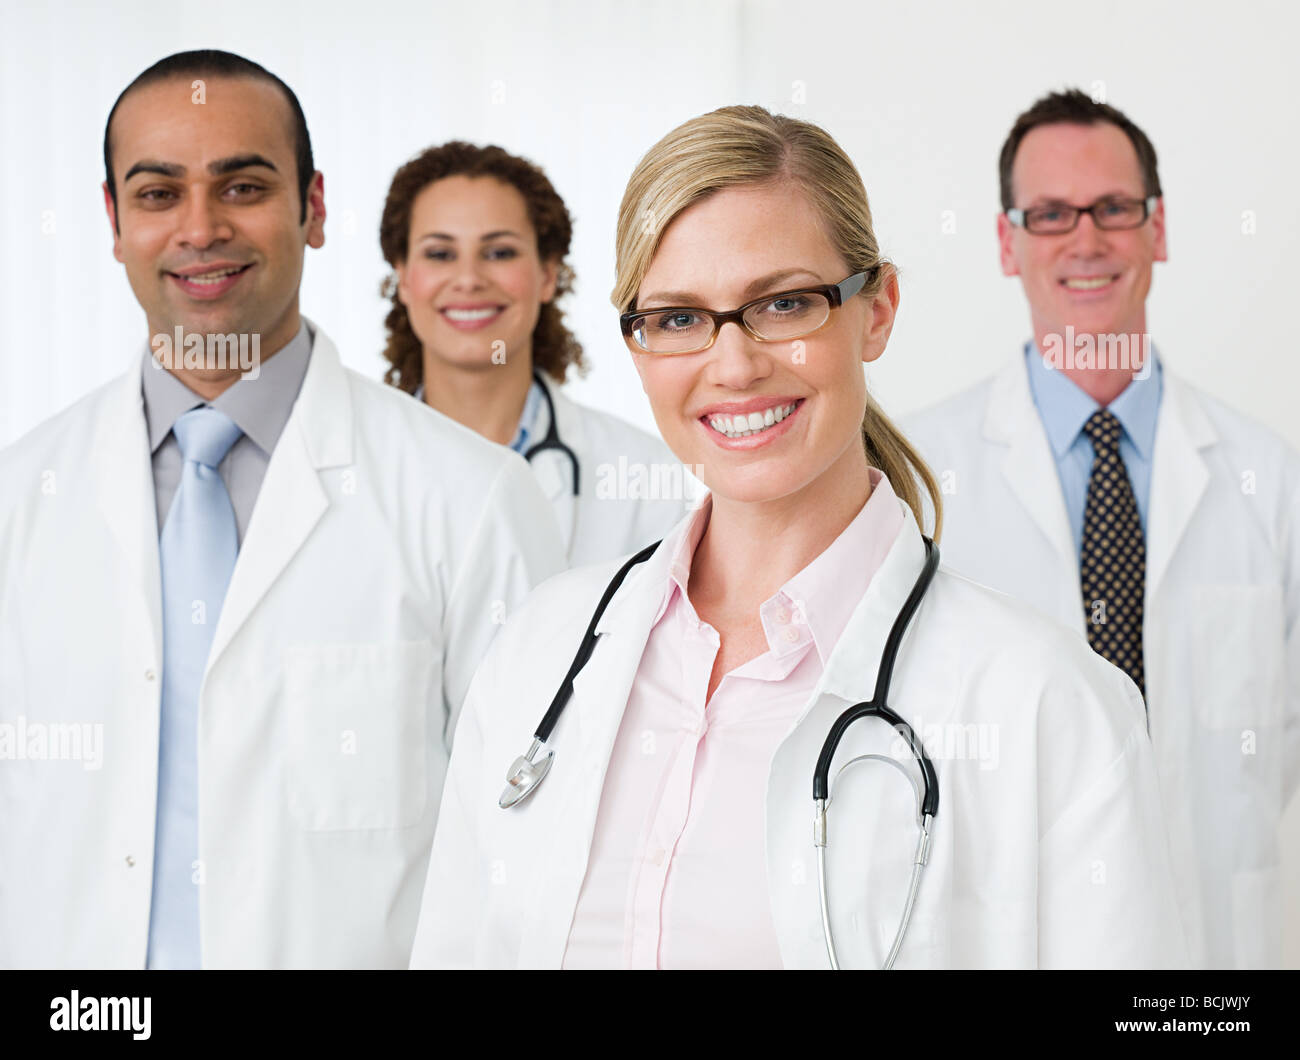 Four doctors - Stock Image